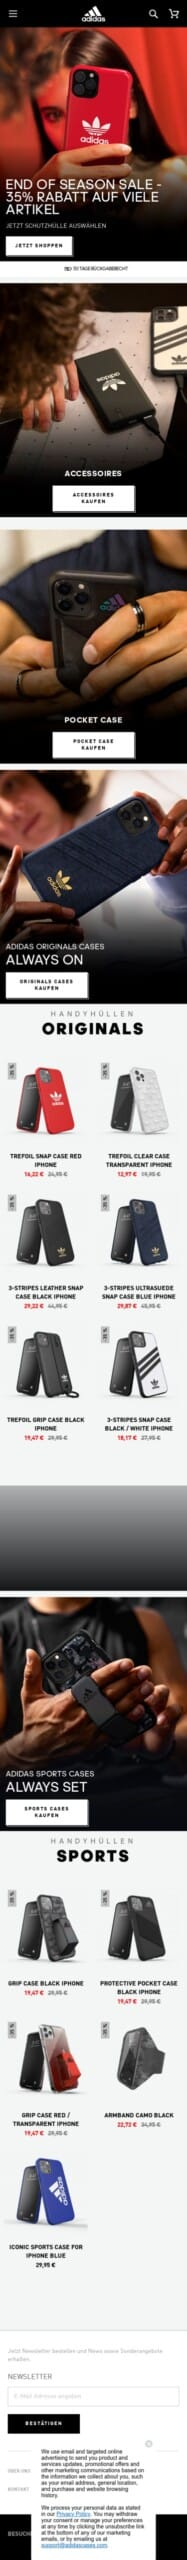 Adidas Cases Coupon